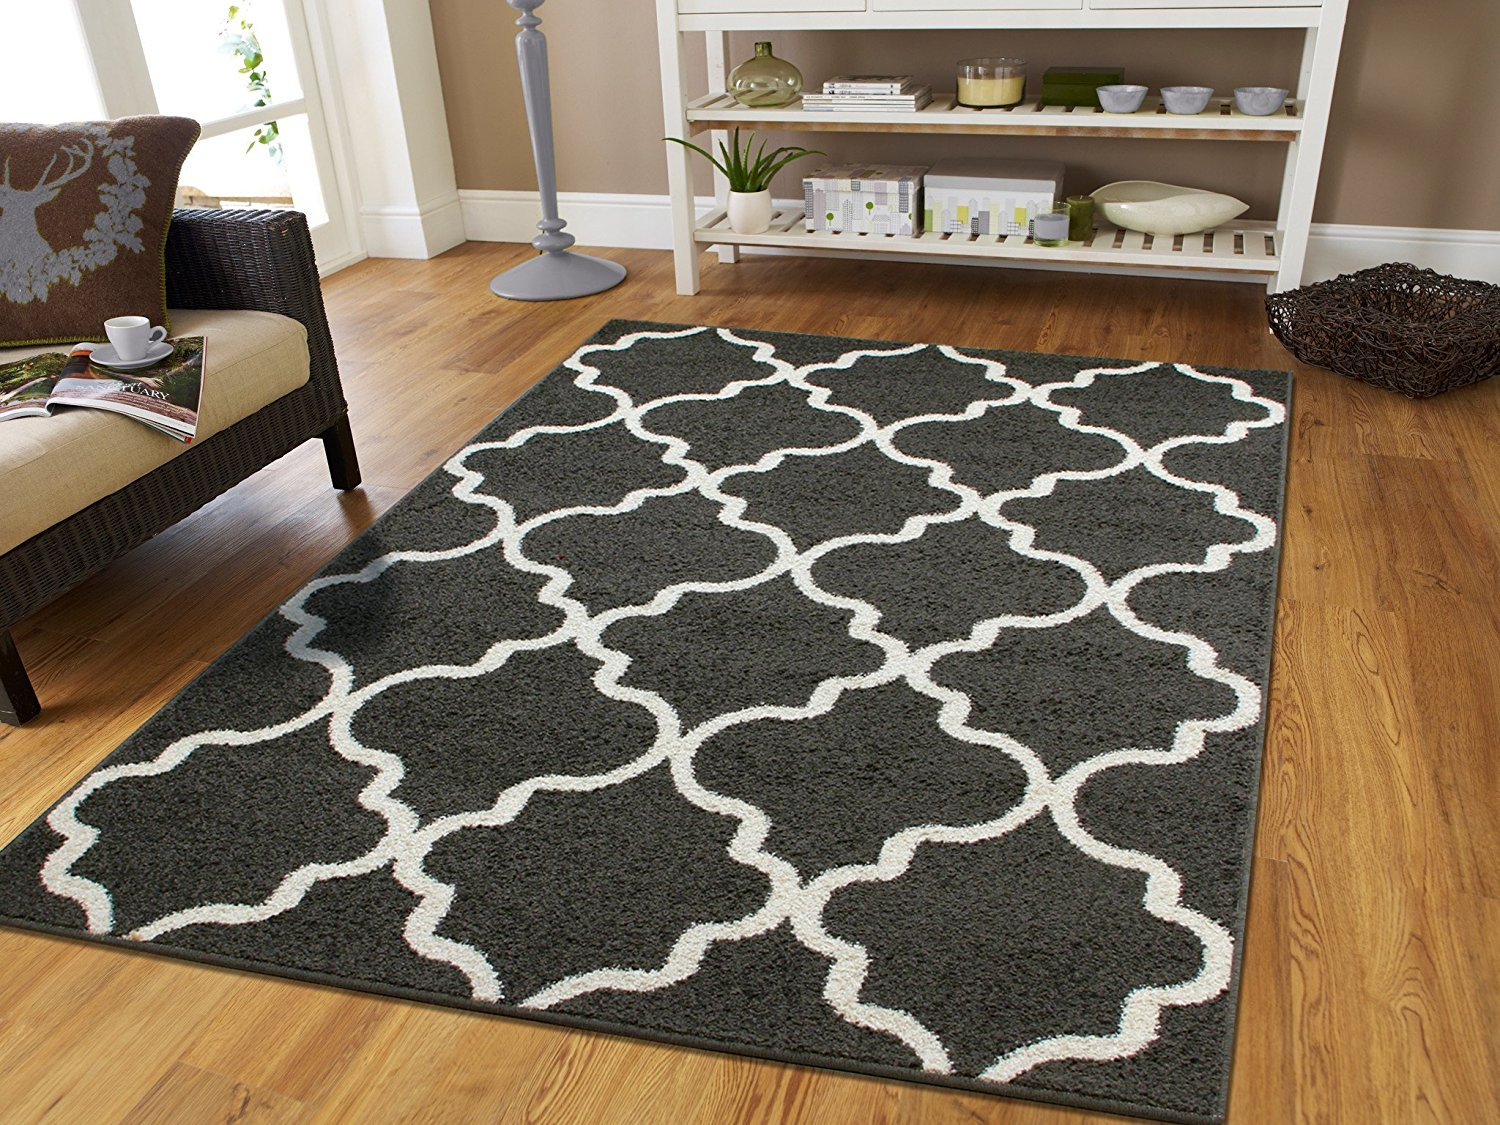 modern area rugs on clearance x contemporary blue rug for living room x walmartcom. modern area rugs on clearance x contemporary blue rug for living